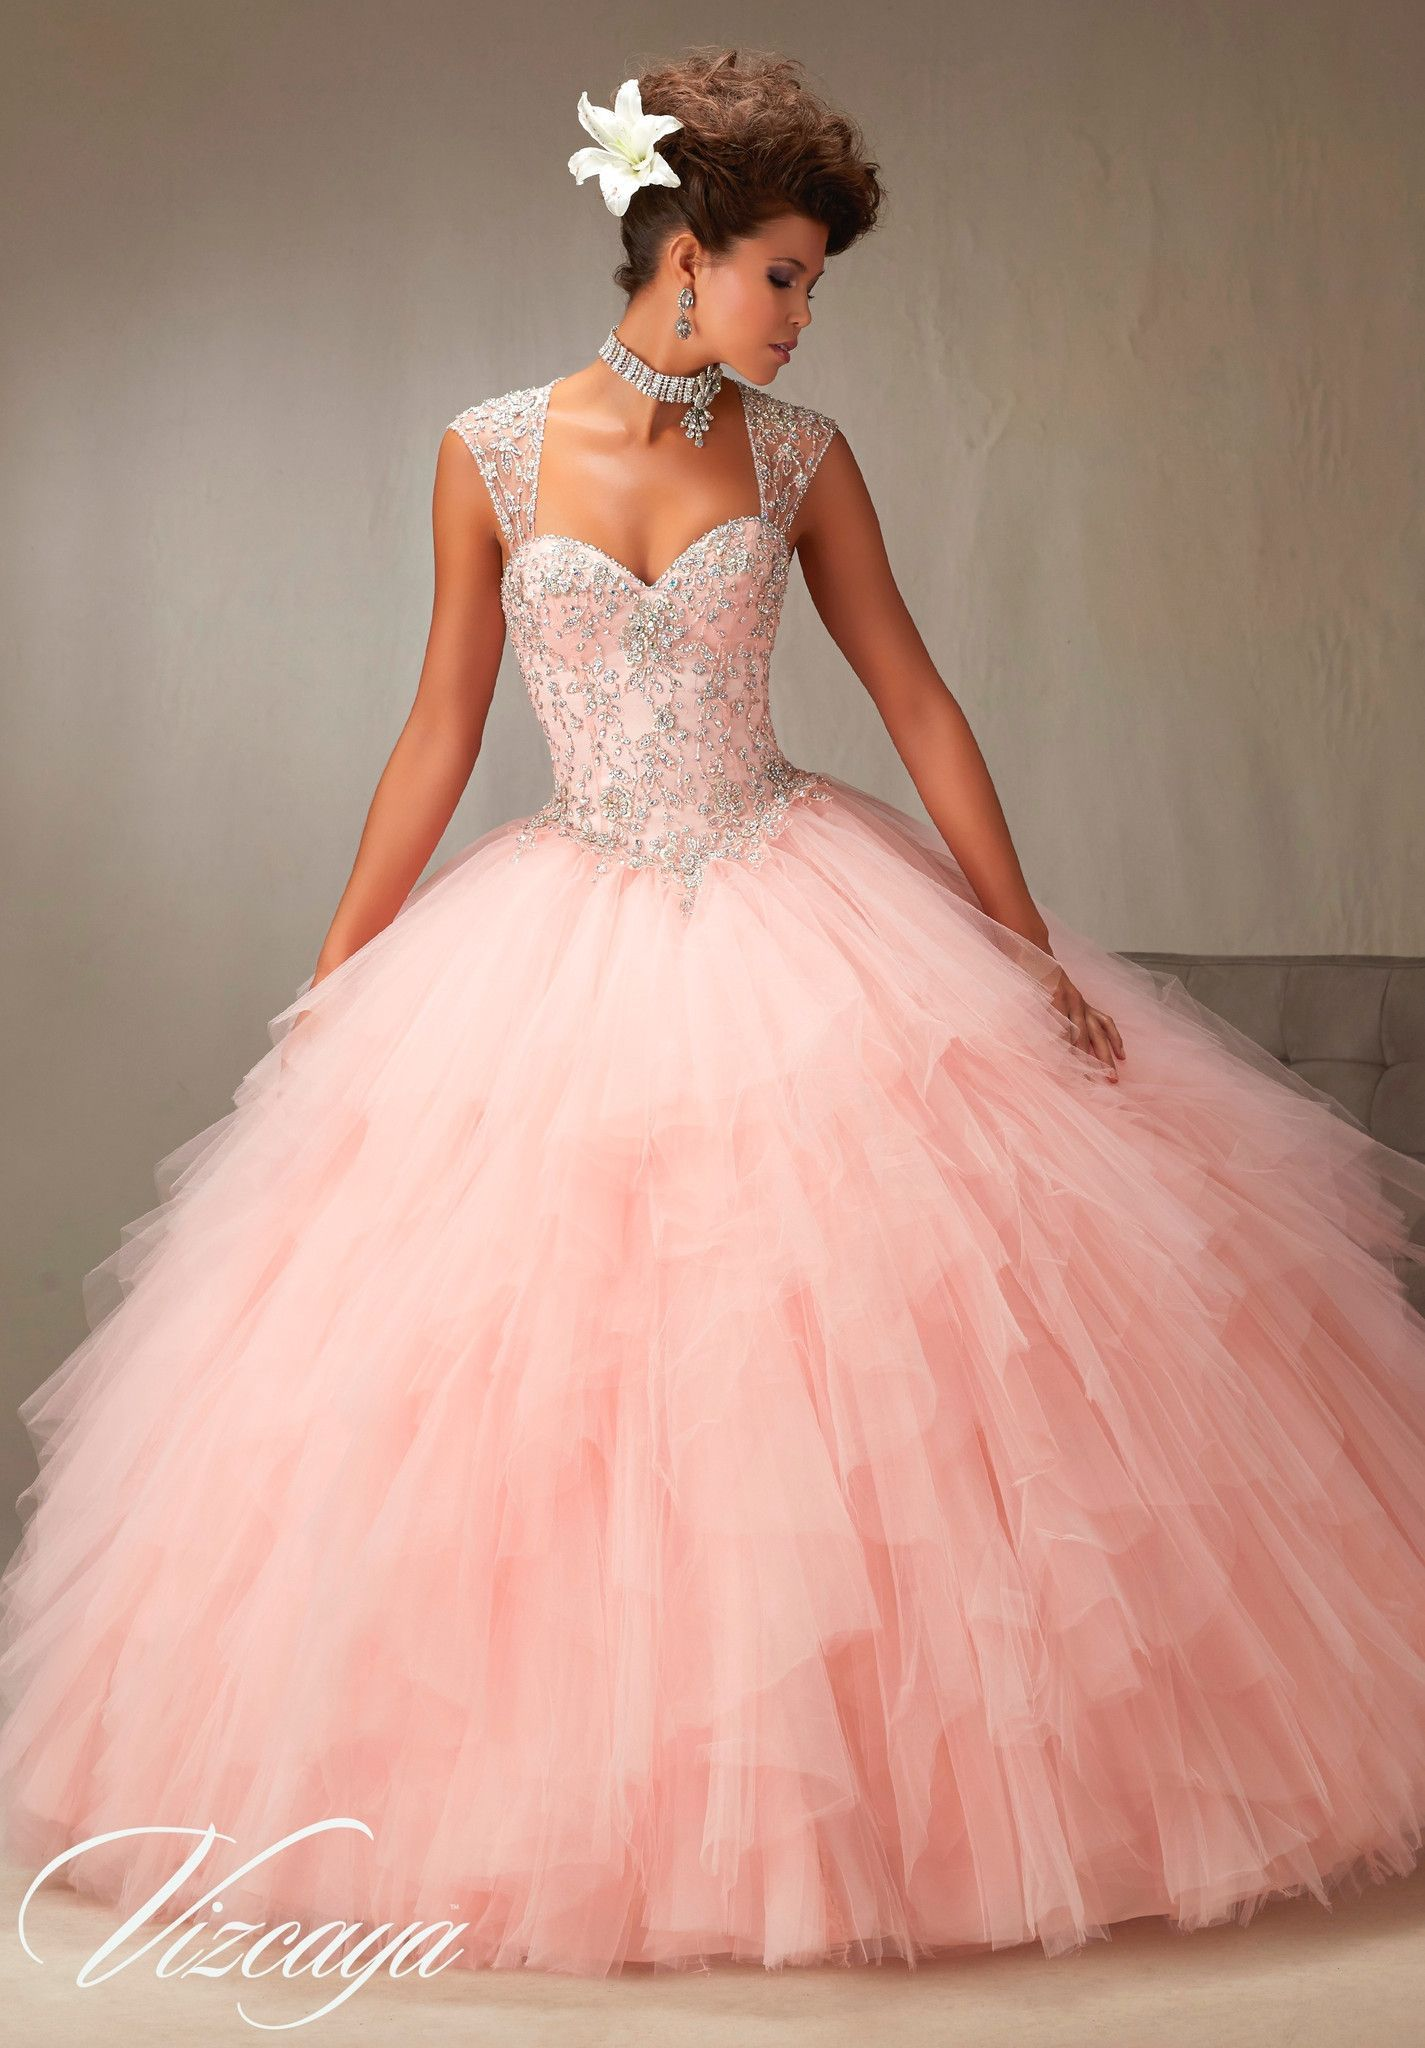 Mori Lee Quinceanera Dress Style 89066 | 15 vestidos | Pinterest ...